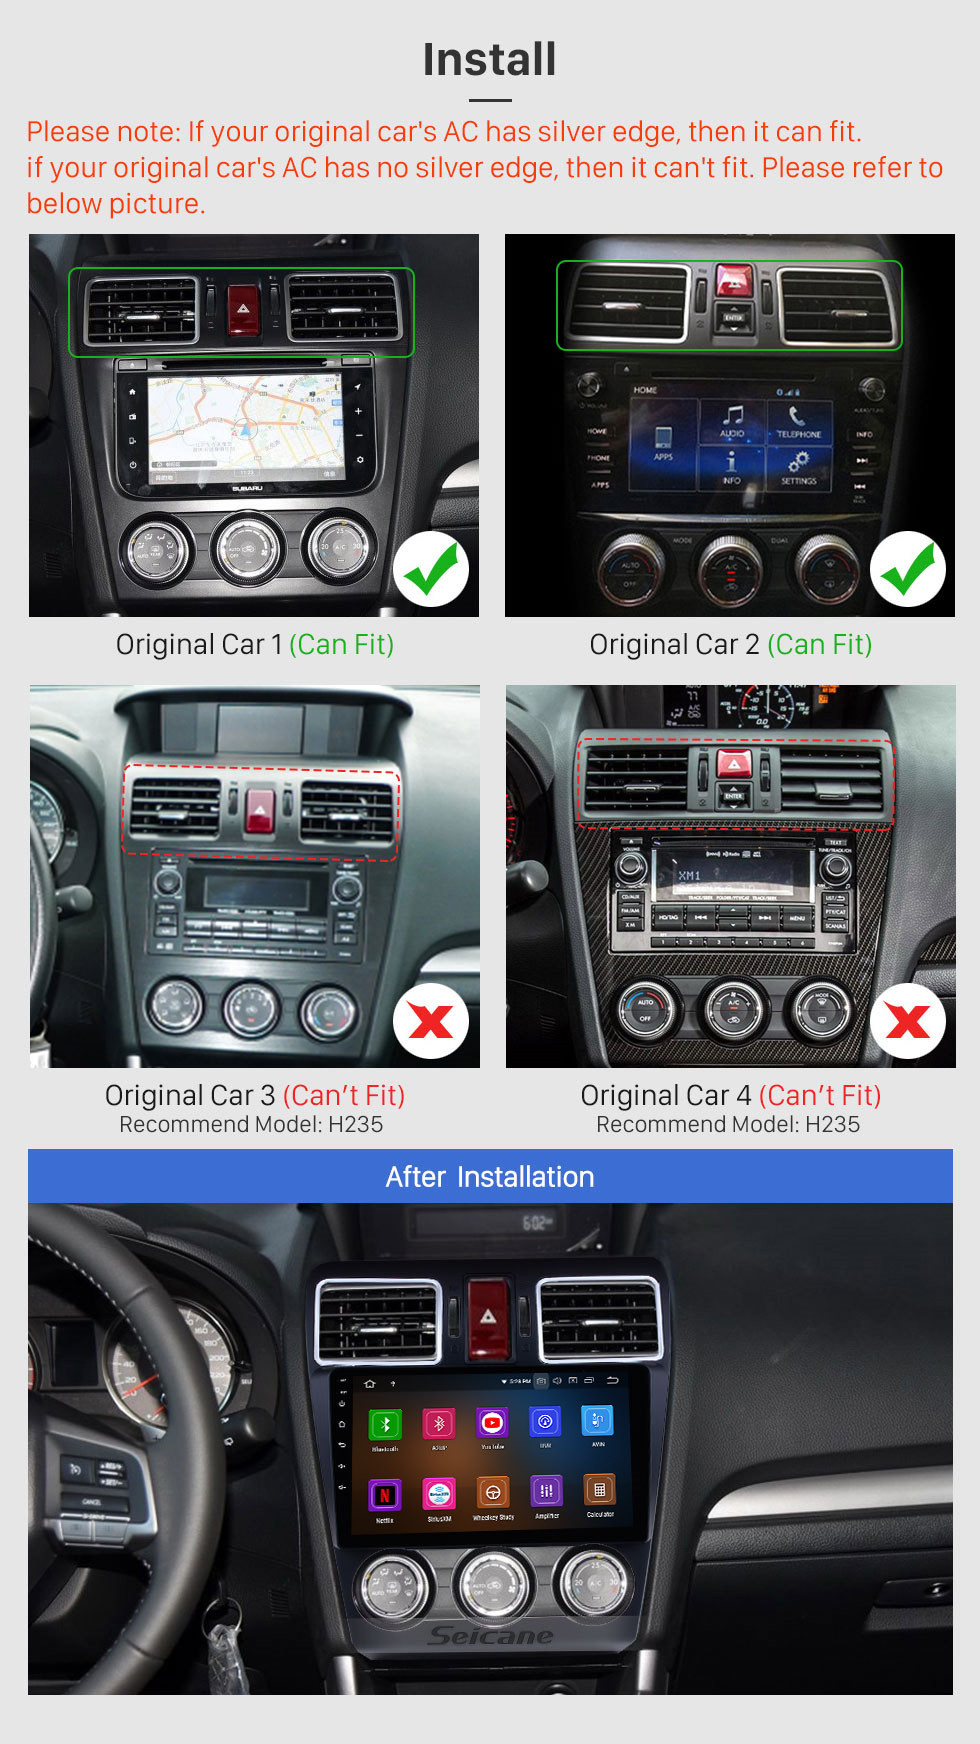 Seicane 2014 2015 2016 Subaru WRX Forester 9 inch Android 10.0 Radio GPS Navigation System Bluetooth Touch Screen 4G WiFi DAB+ TPMS DAB+ DVR OBDII DVD Player